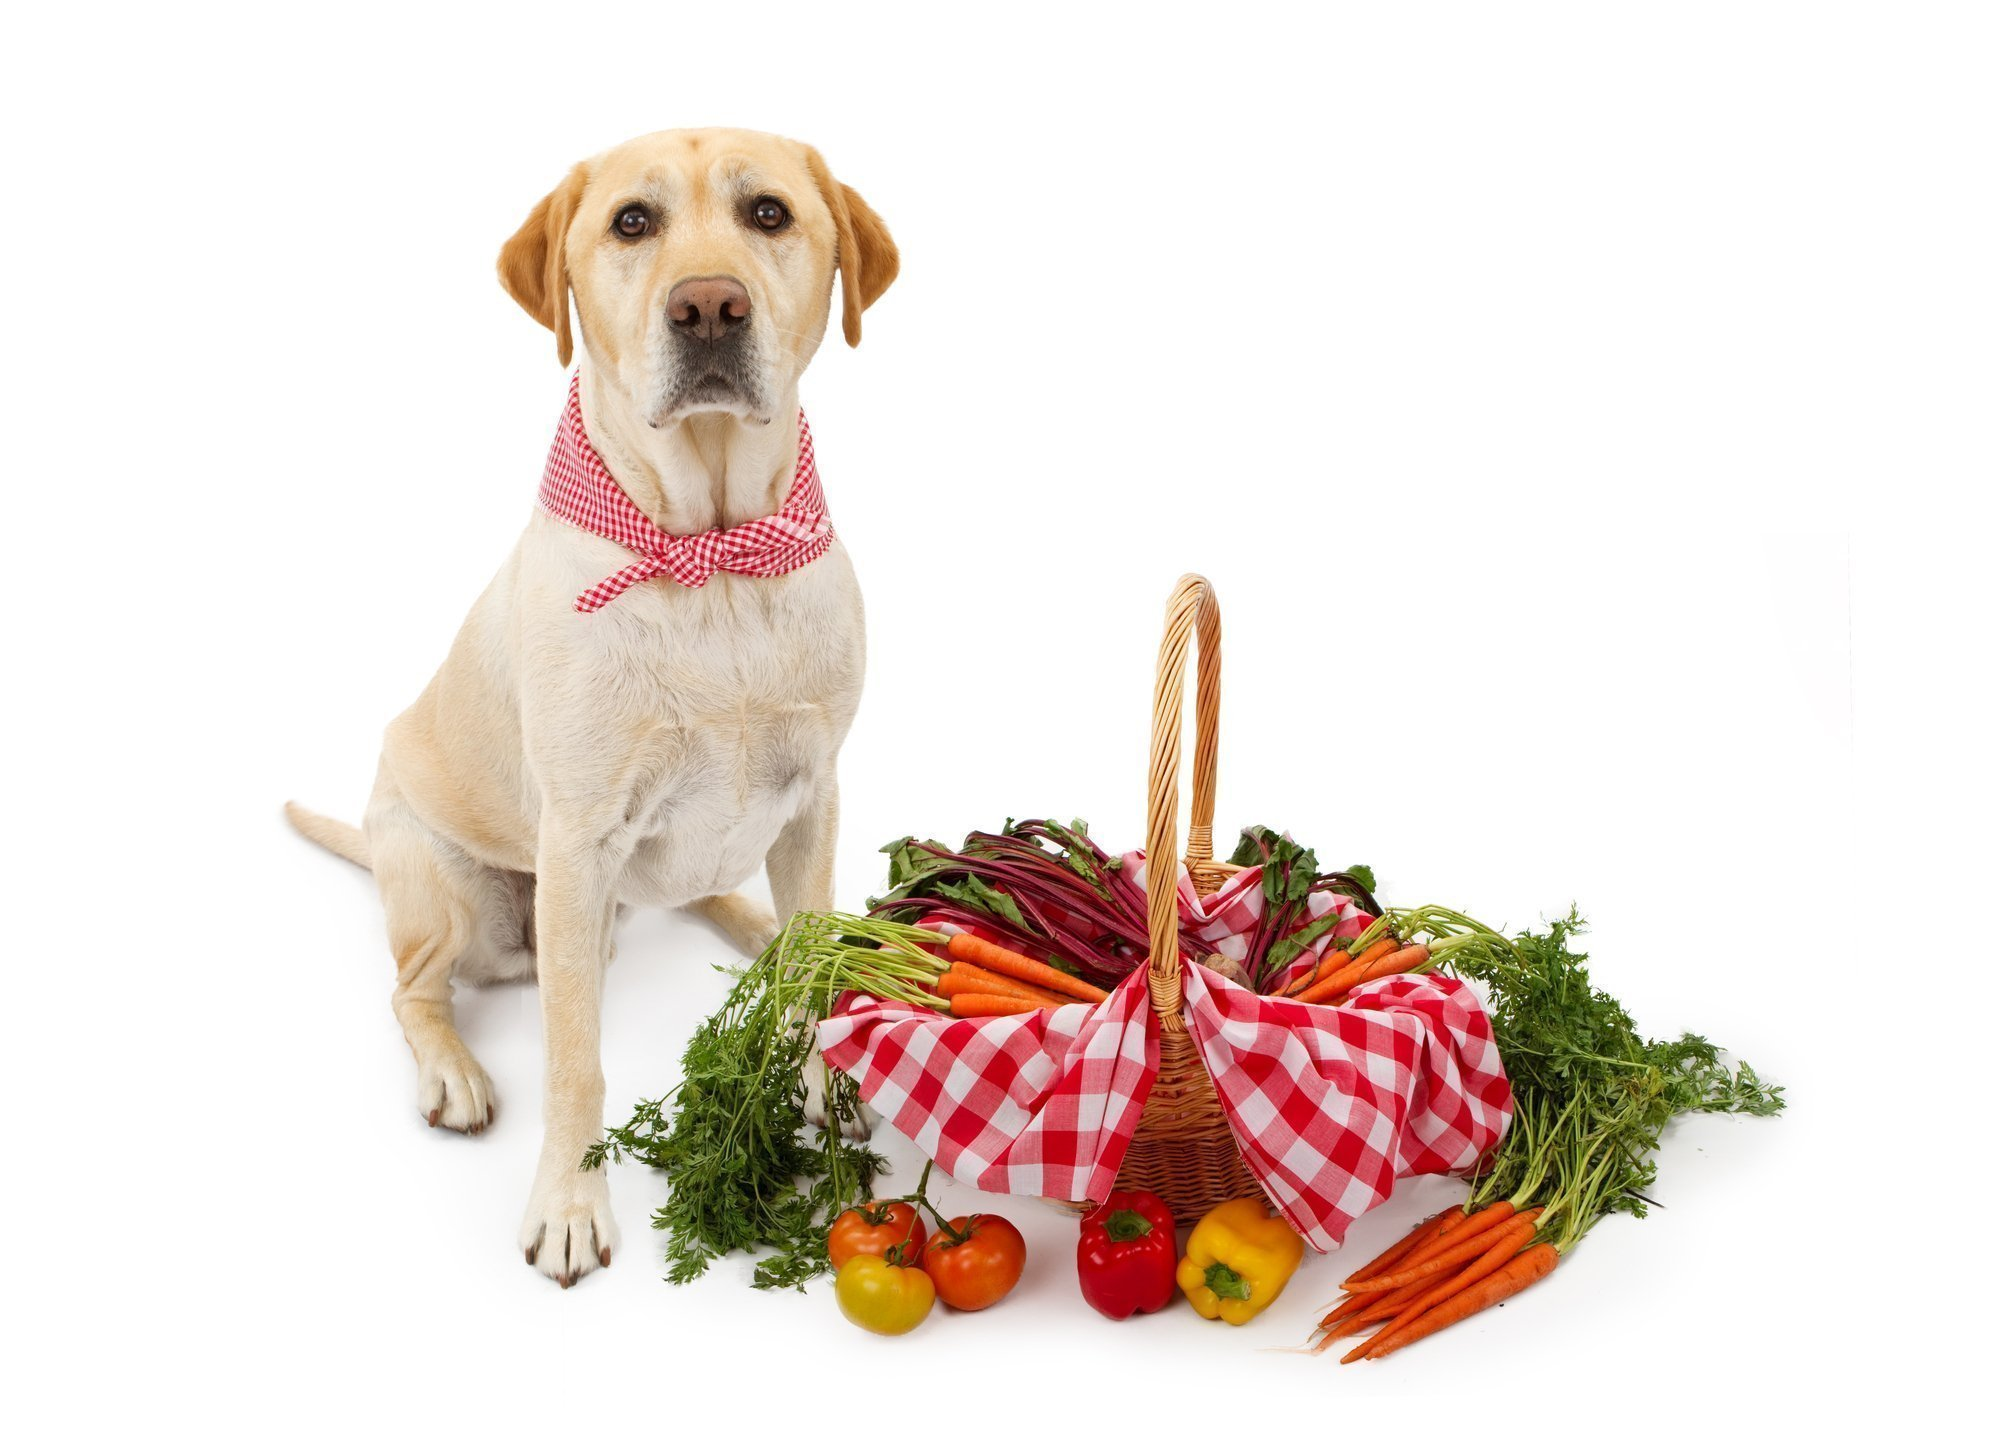 Yellow Labrador Retriever with a large basket of vegetables wearing a checkered scarf.